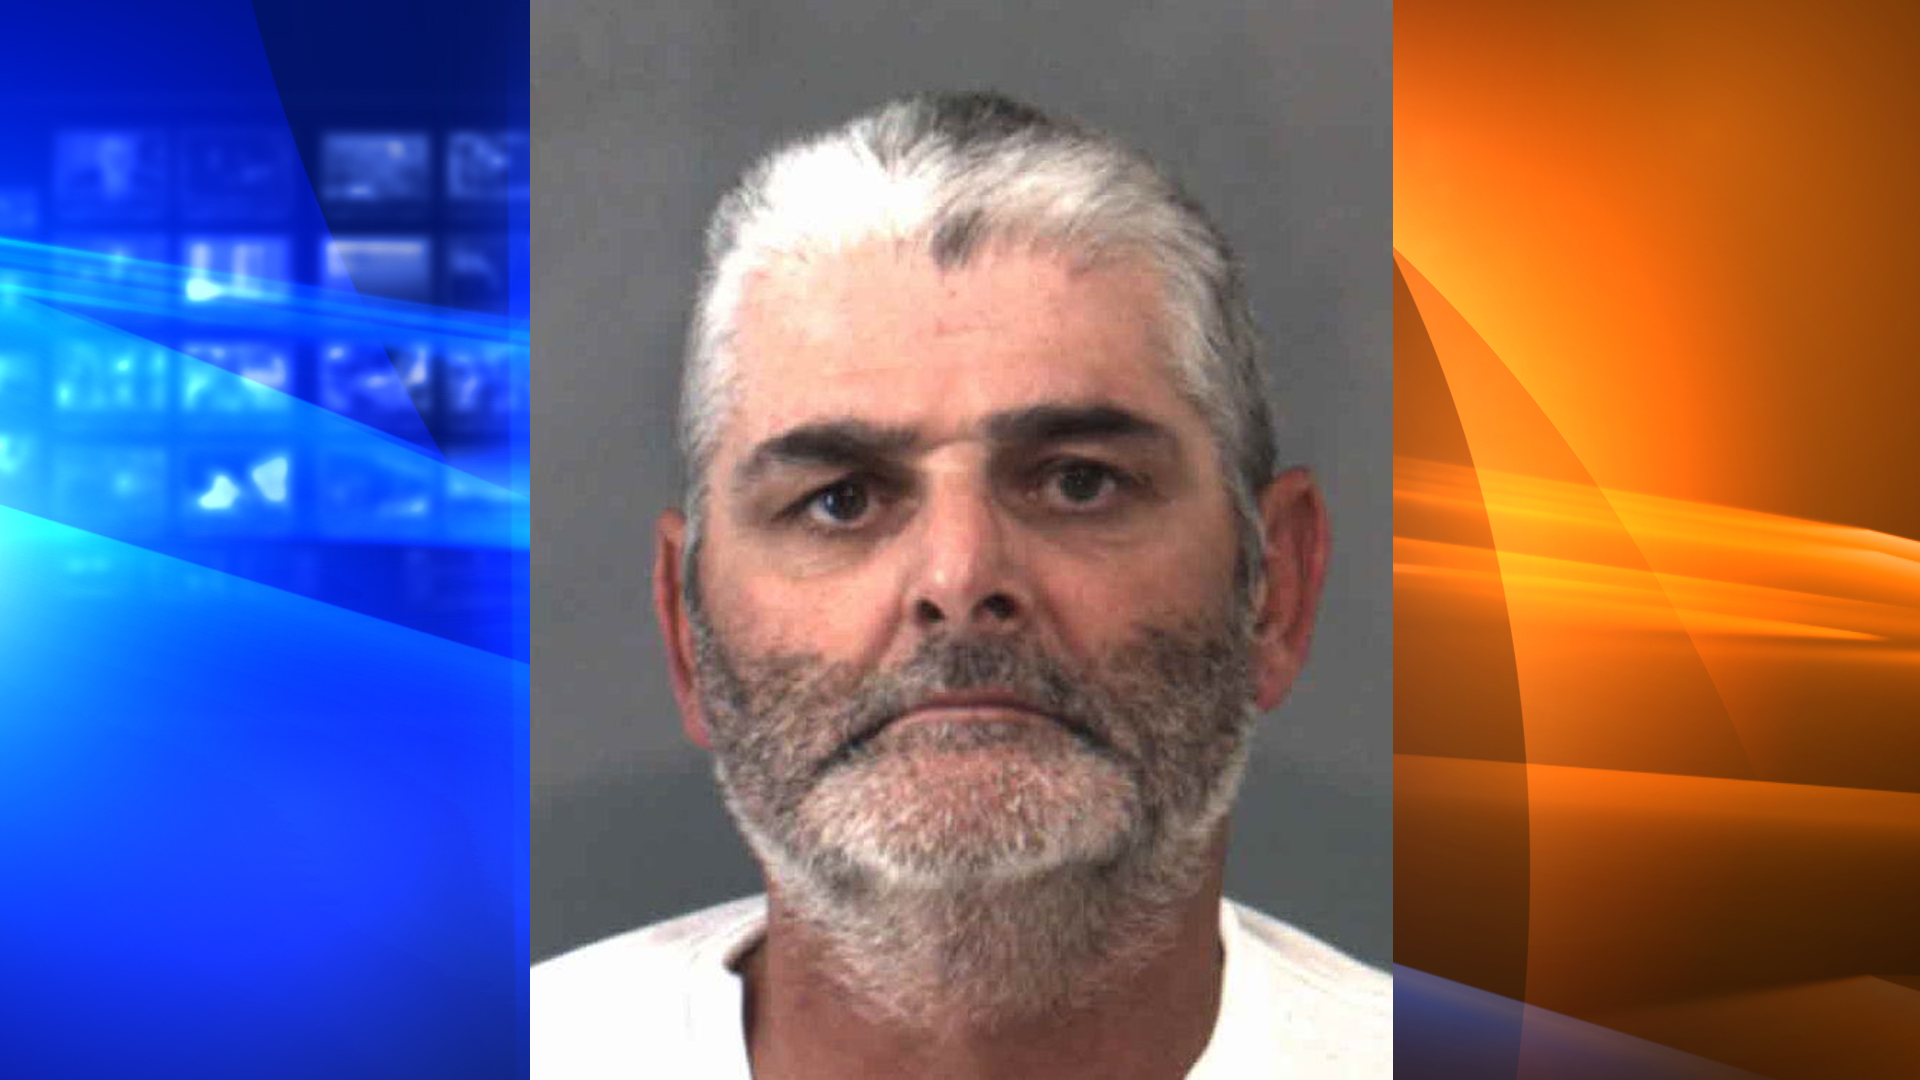 Randy John Morasch is shown in a booking photo released by the Riverside County DA's office.